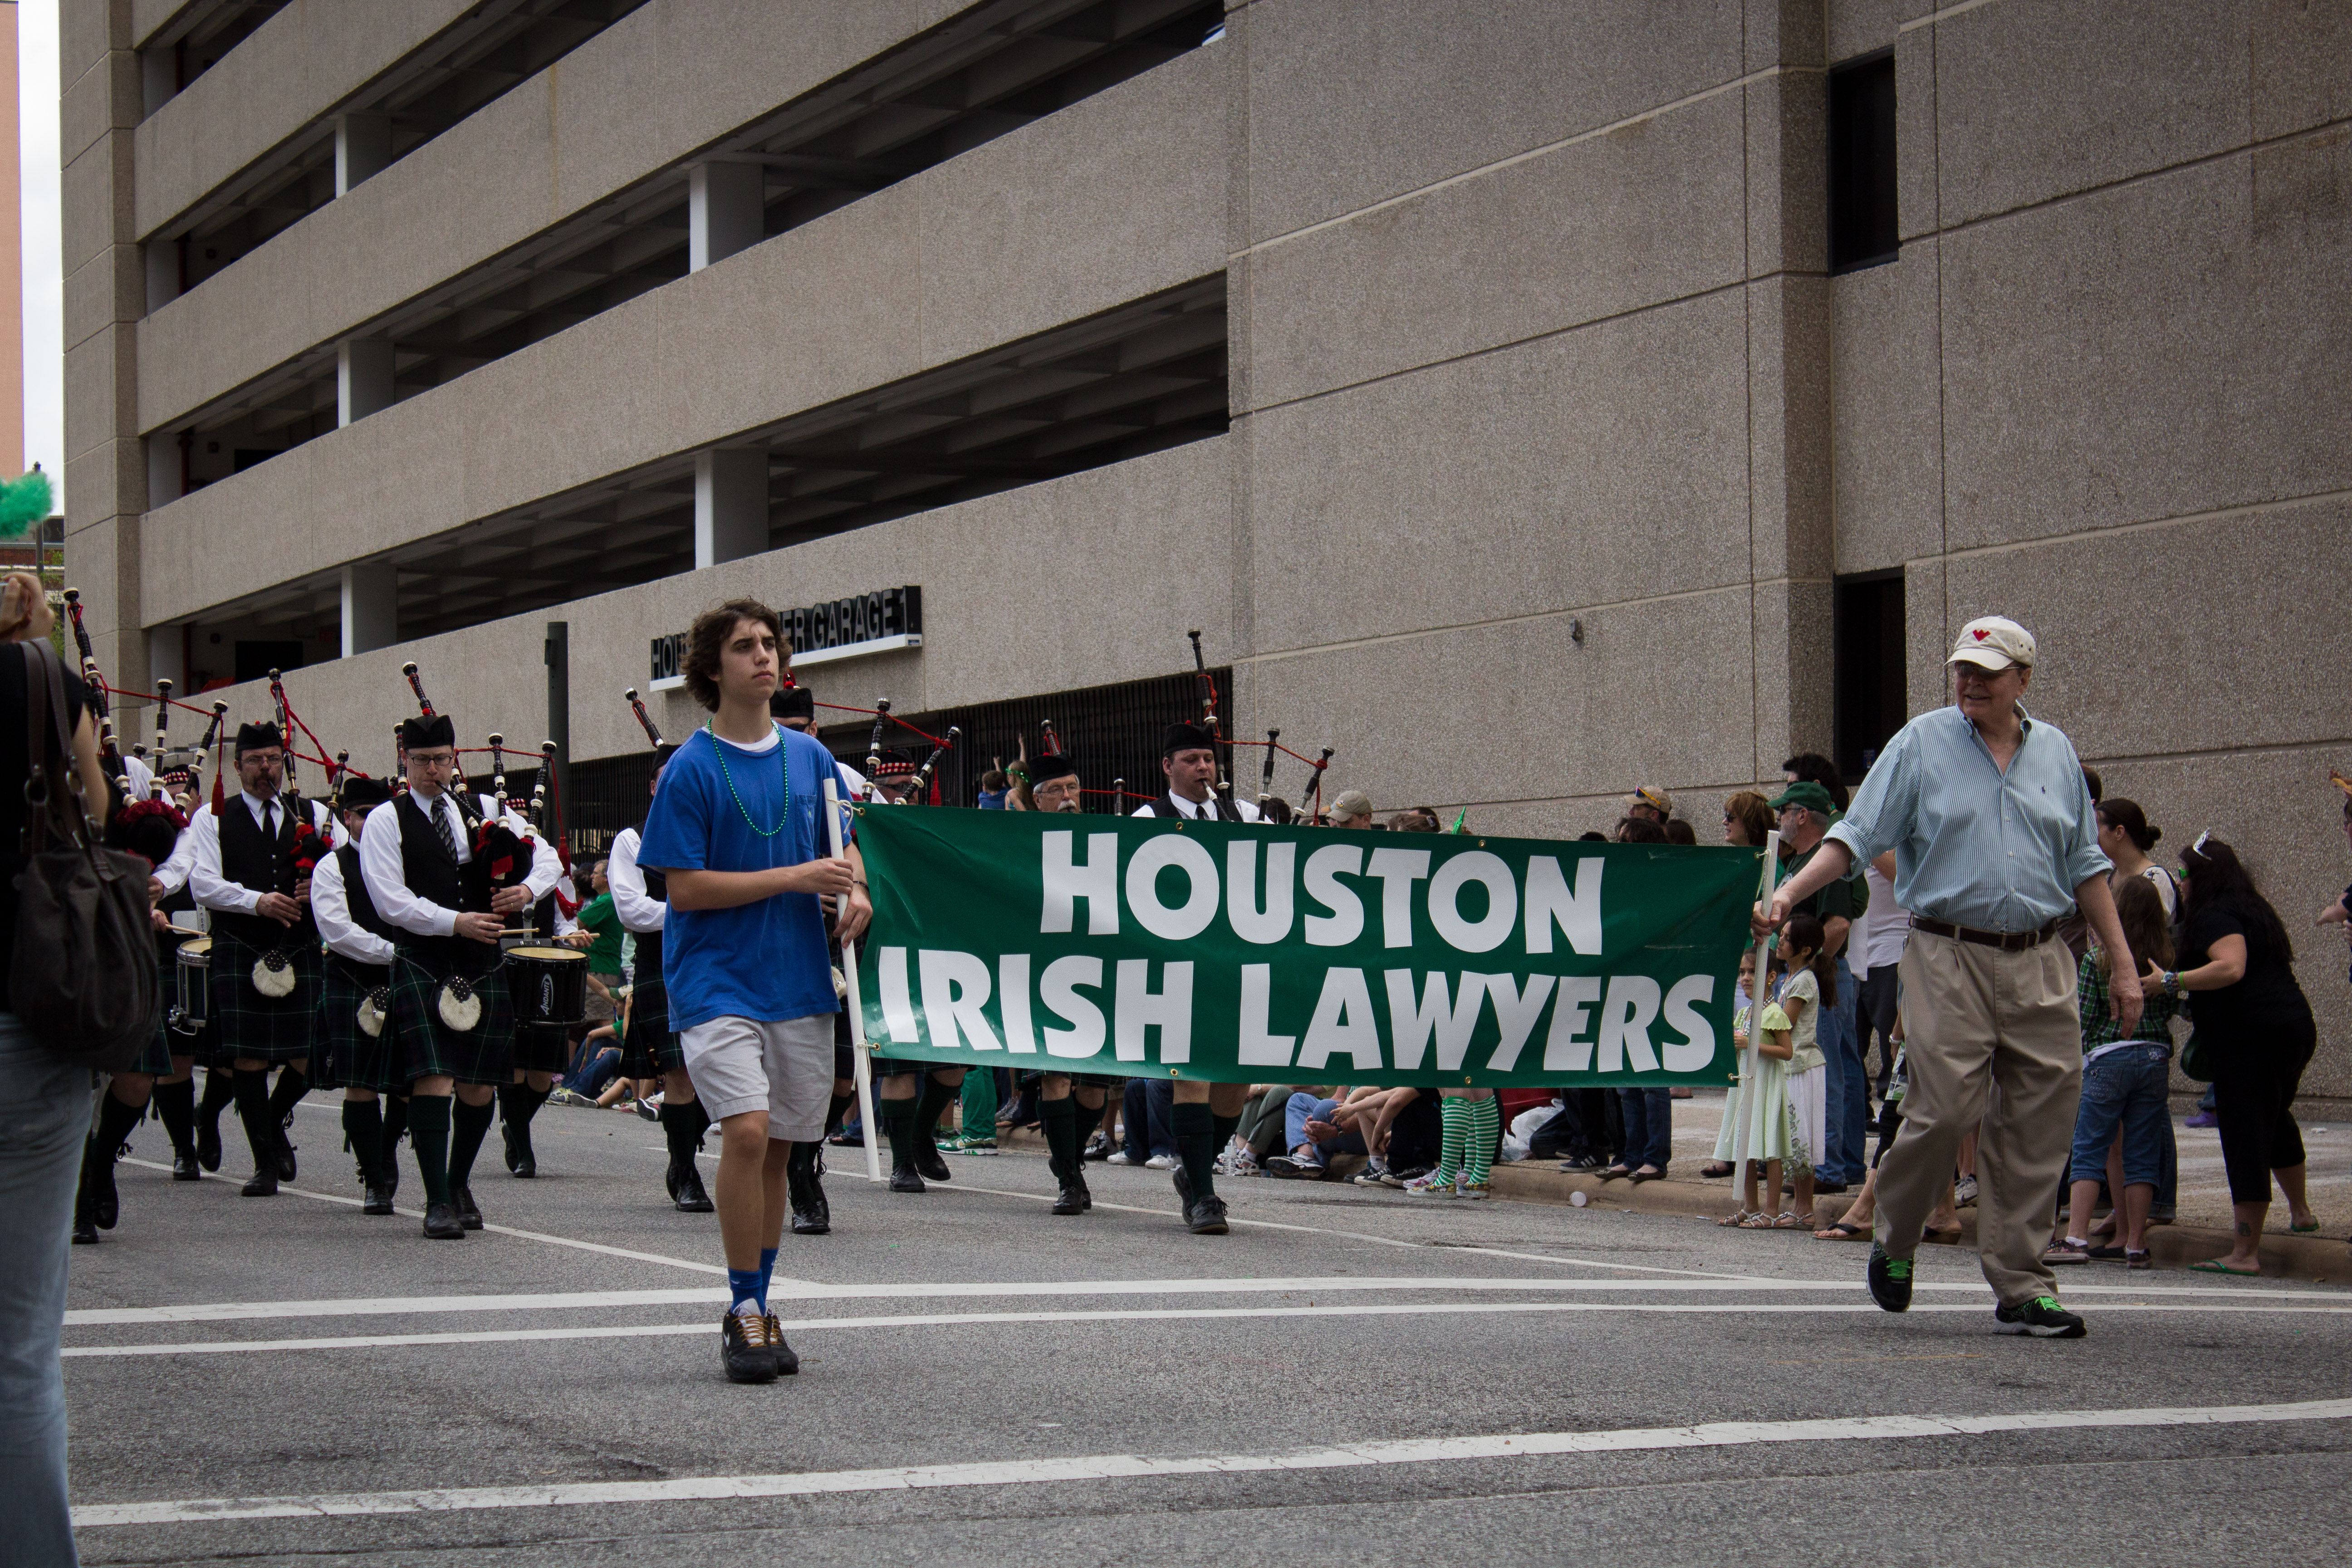 st patricks day parade downtown houston 2012 irish-19